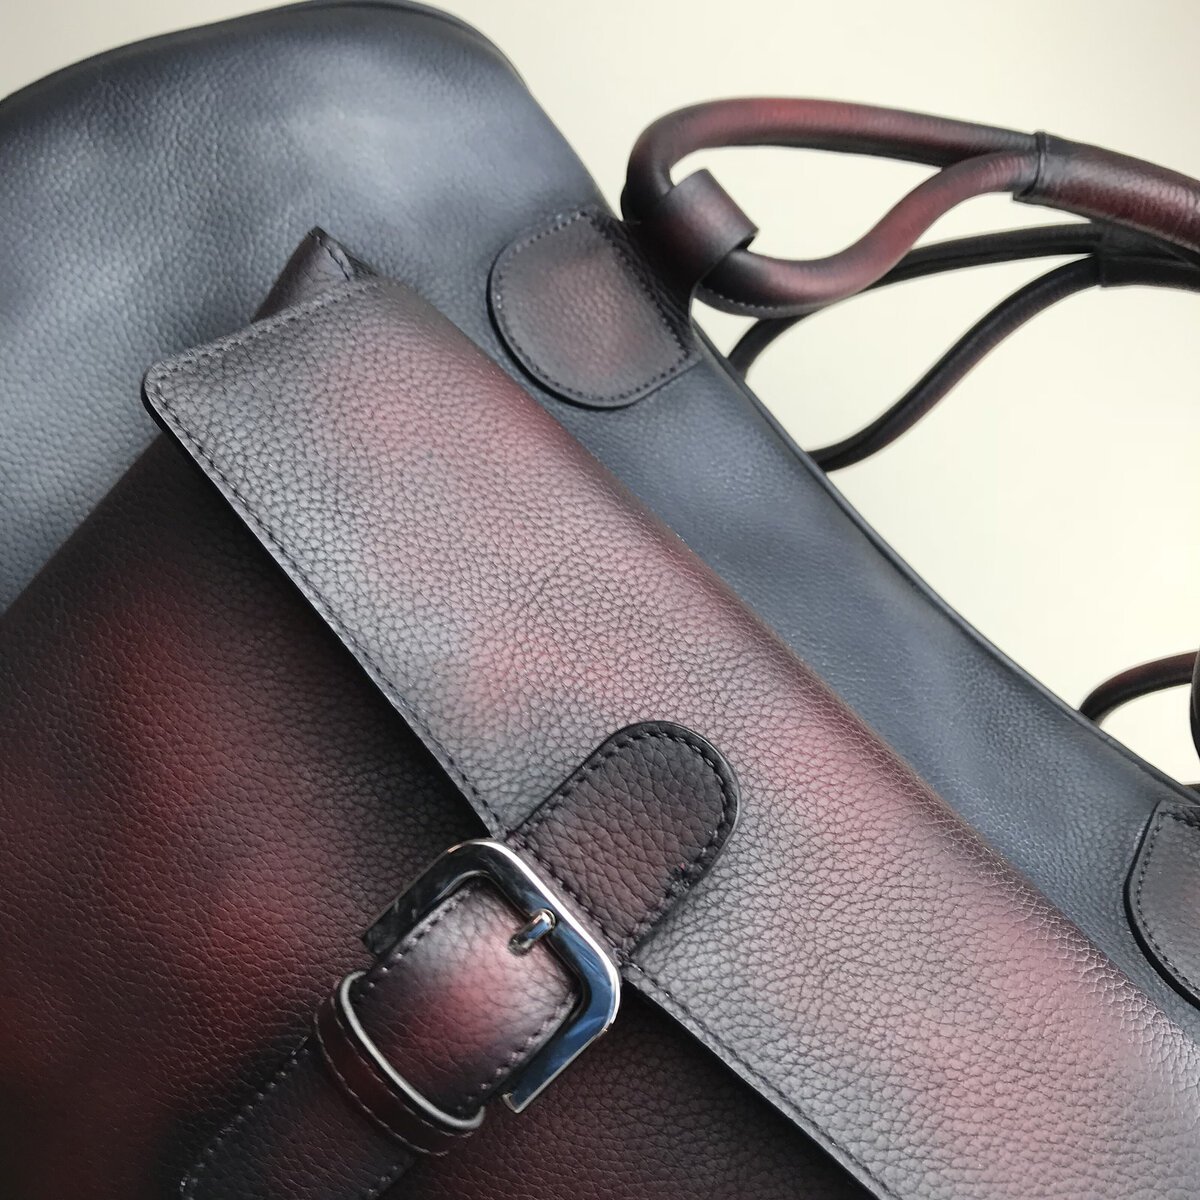 gps-custom-leather-weekender-duffel-bag-grey-red-2